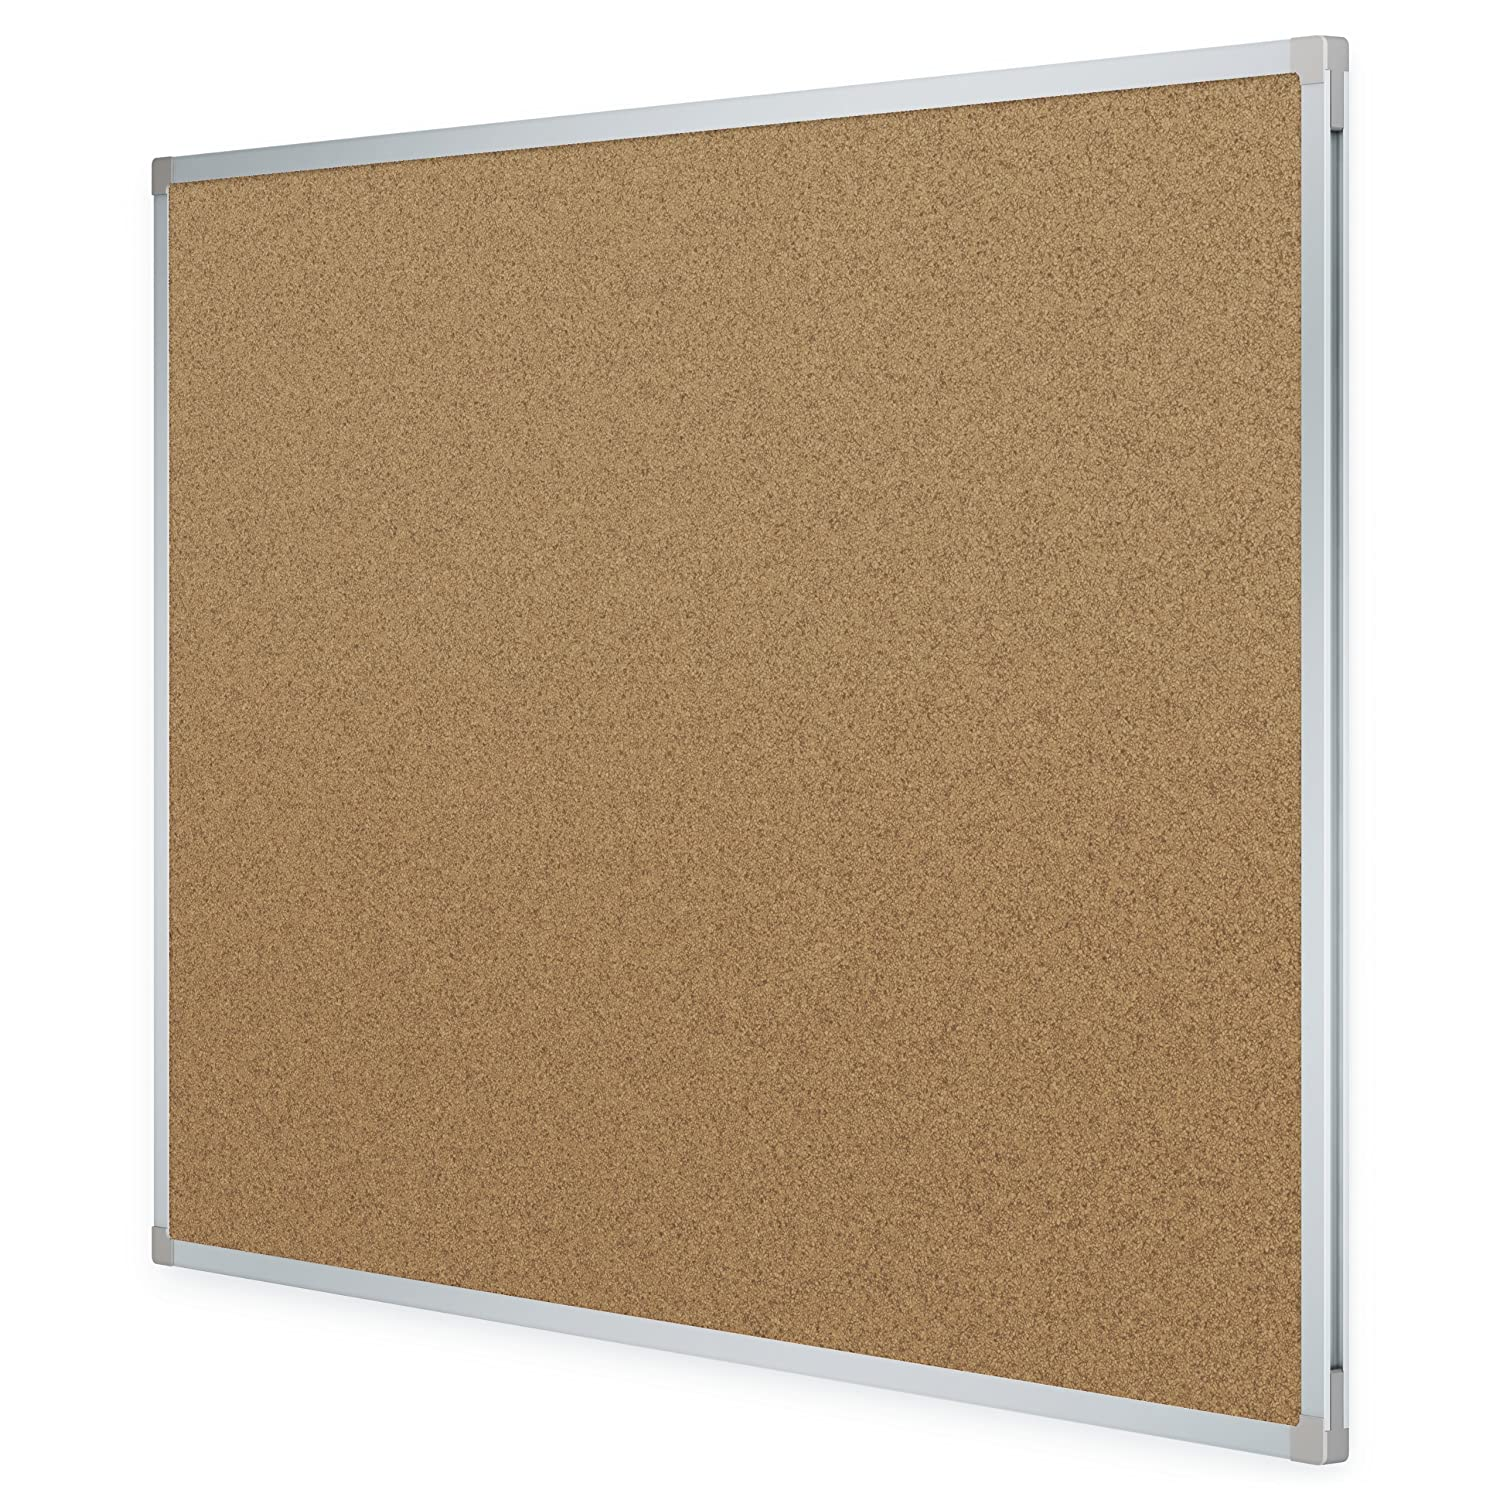 Cork Bulletin Board Amazoncom Mead Classic Cork Bulletin Board 4 X 3 Feet